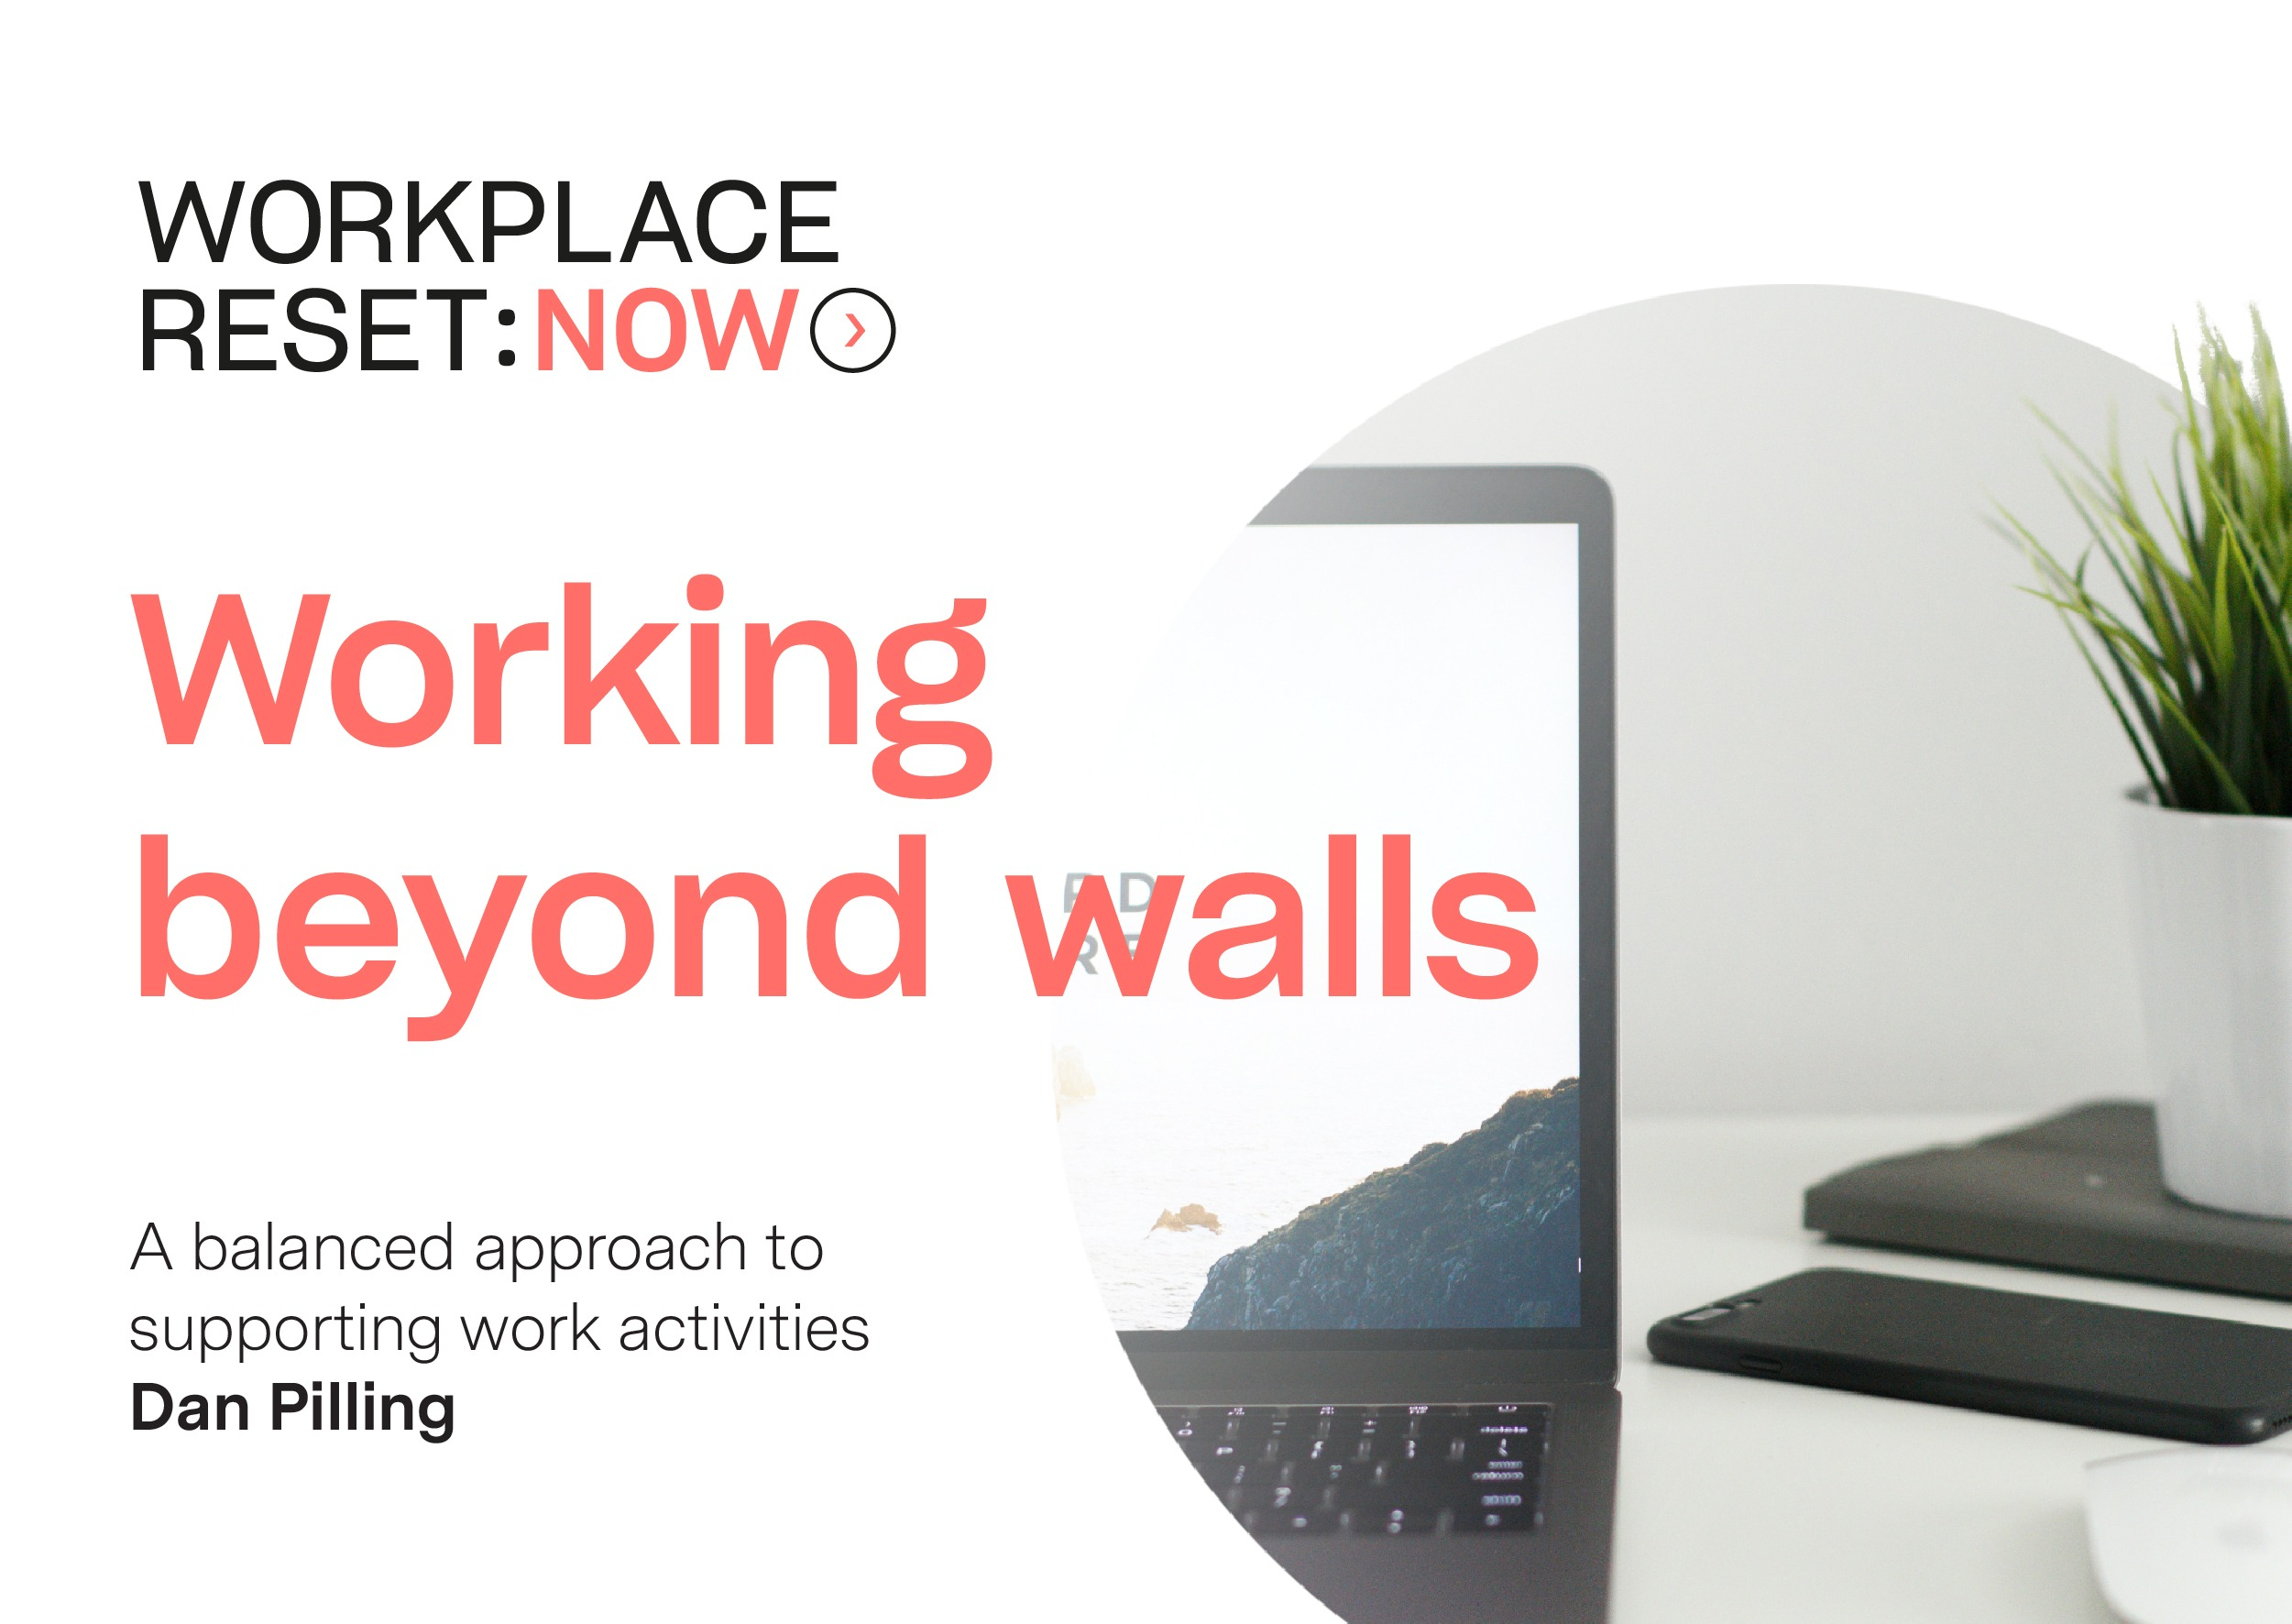 Working beyond walls: A balanced approach to supporting work activities